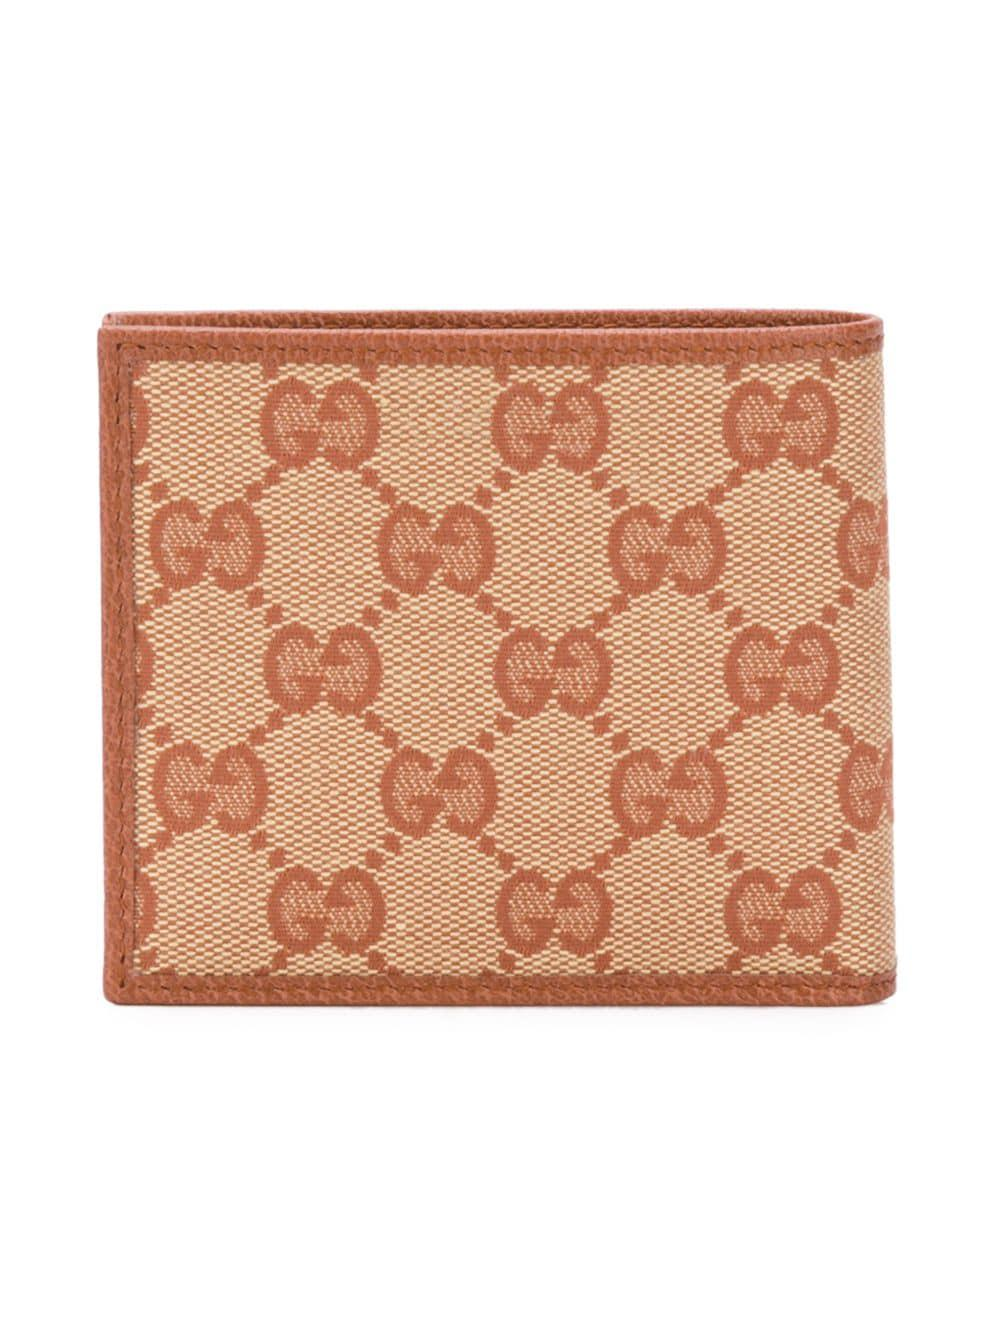 a815571ec426 Gucci New York Yankees Patch Wallet in Brown for Men - Save 18% - Lyst